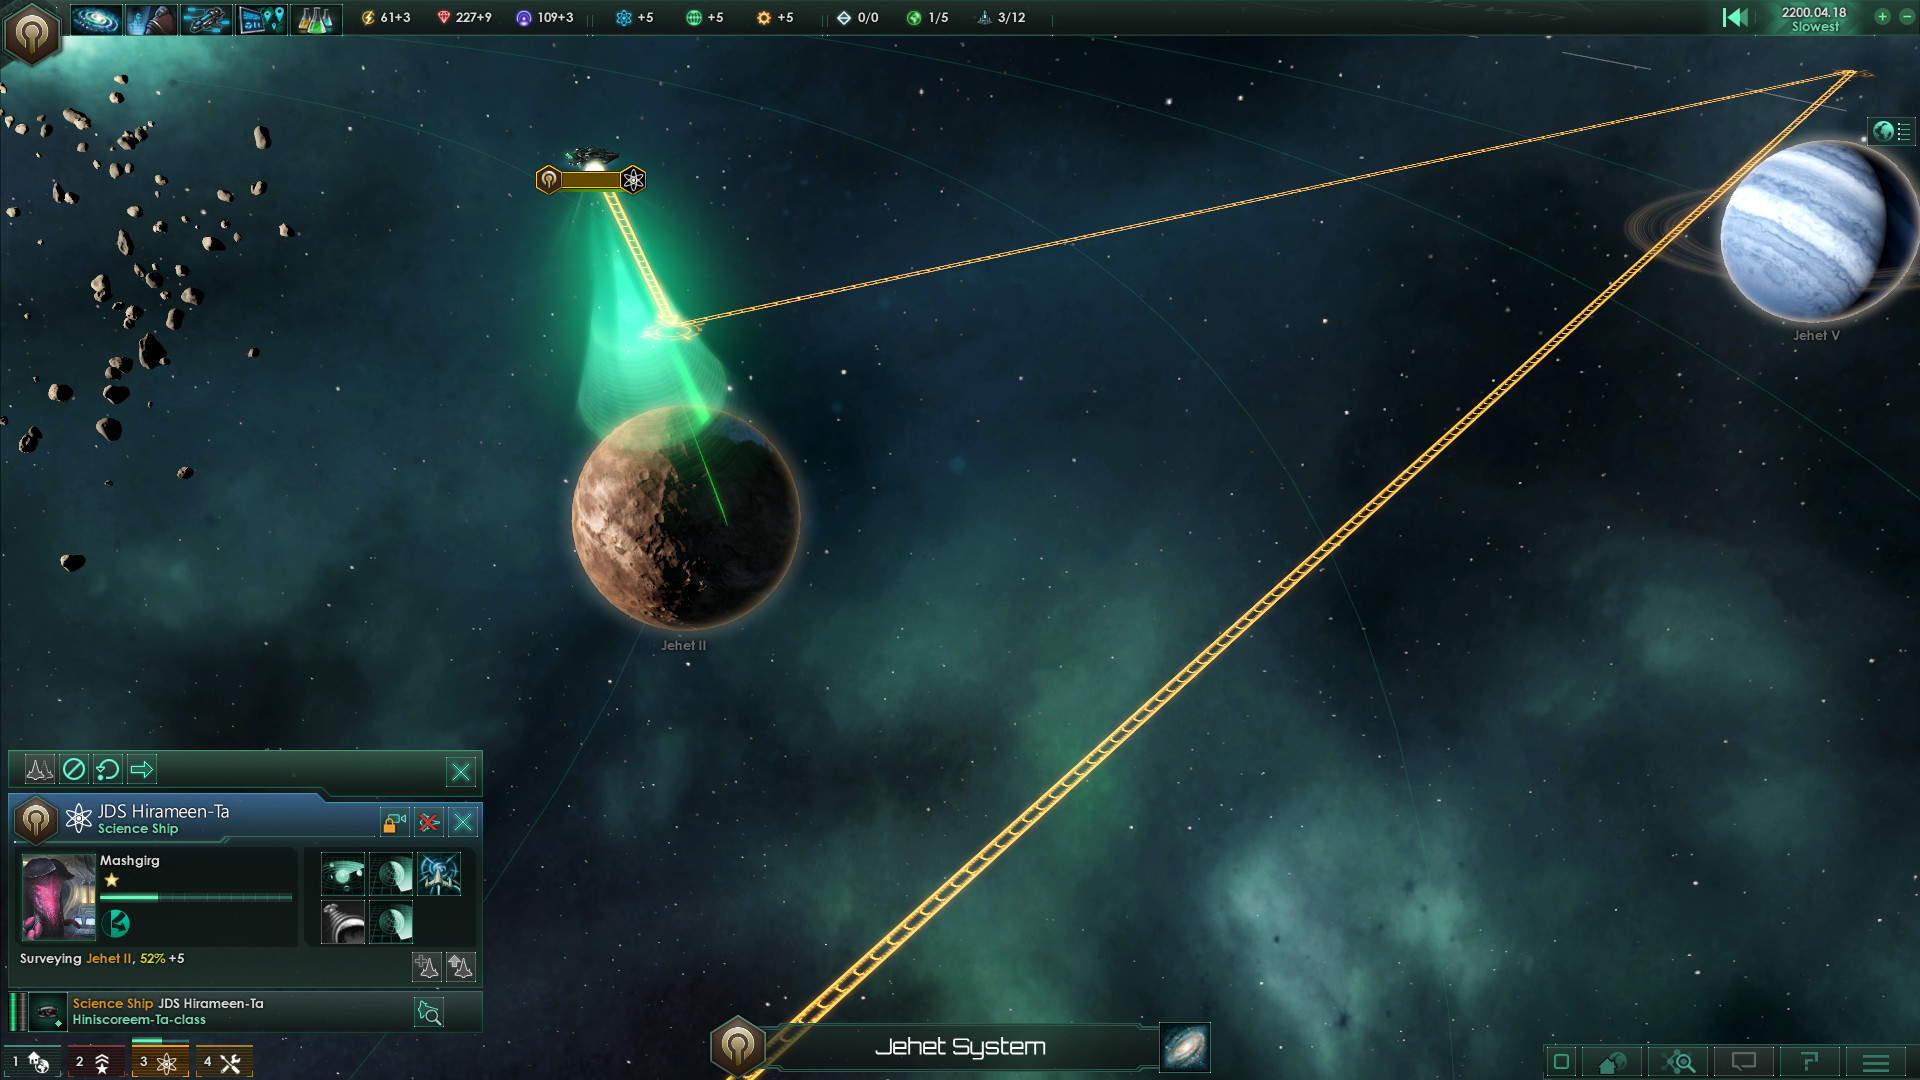 ss 978c3767eee21525800449c39771c01b549b5775.1920x1080 - Stellaris Review - Reaching for the Stars